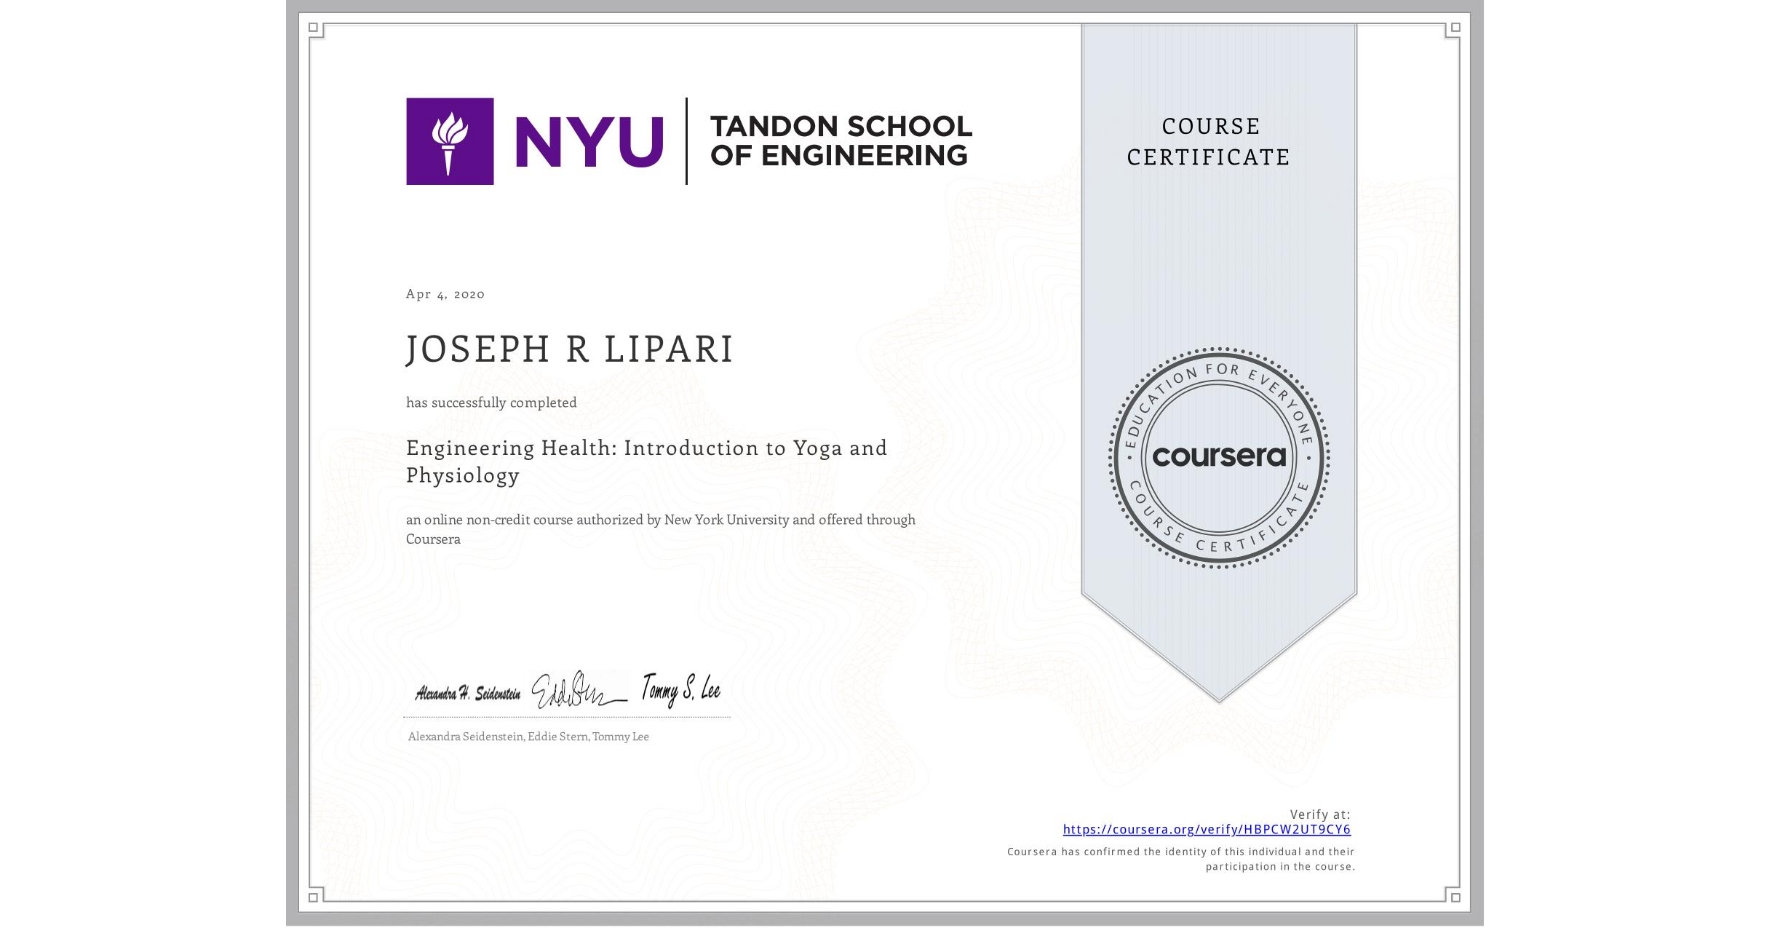 View certificate for JOSEPH R  LIPARI, Engineering Health: Introduction to Yoga and Physiology, an online non-credit course authorized by New York University and offered through Coursera